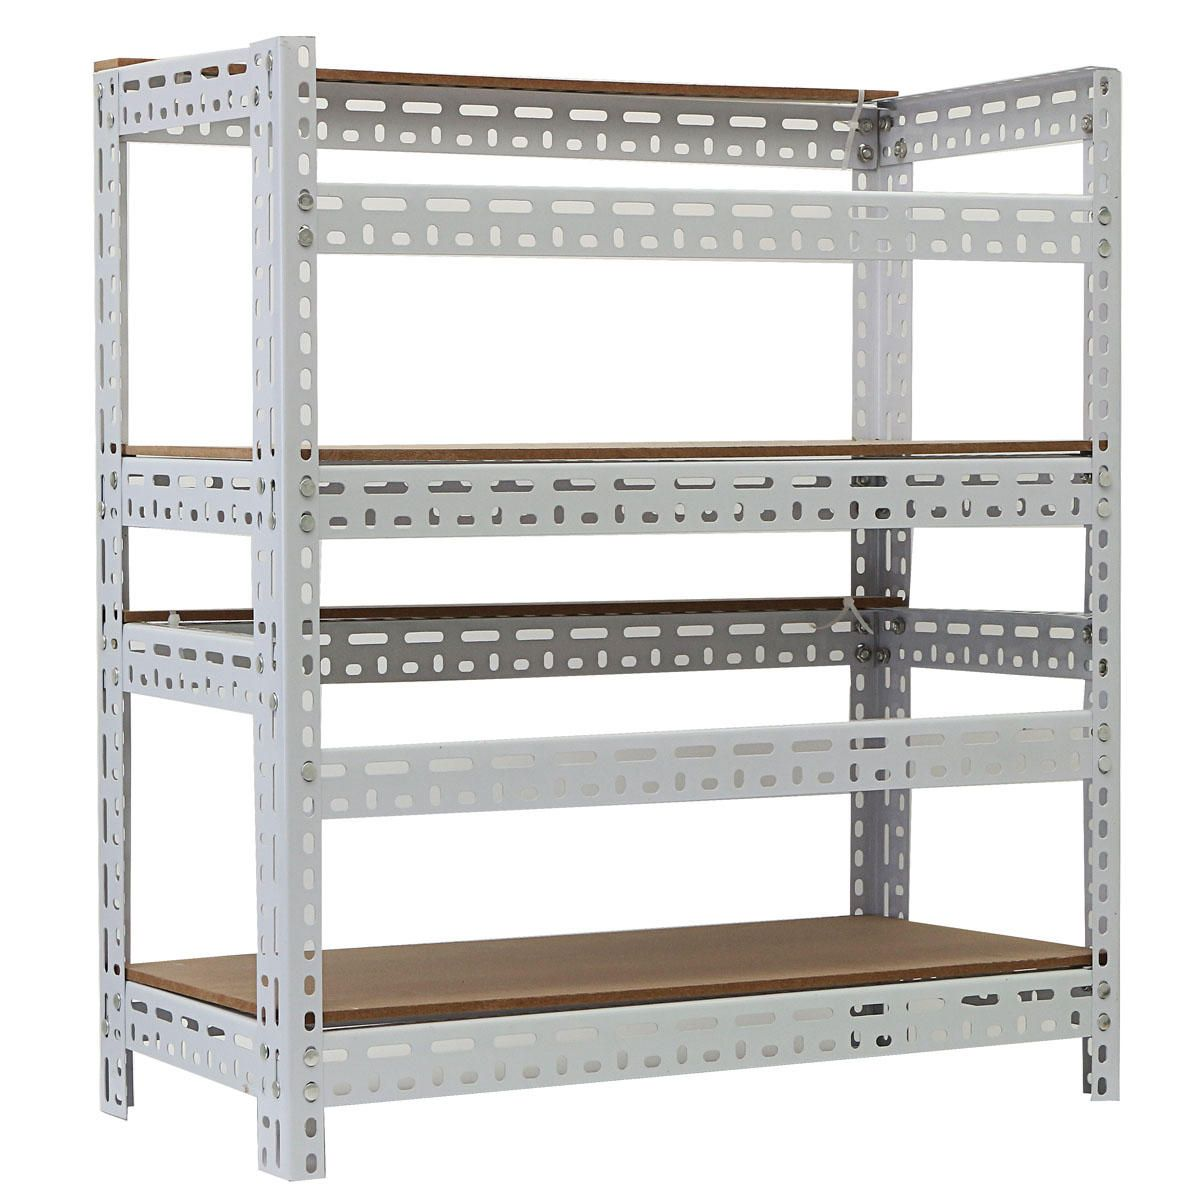 Aluminum Frame Mining Frame Rig Stackable Frame 12 Gpu Electrical Equipment Supplies From Tools Industrial Scientific On Banggood Com Turks And Caicos Islands Barbuda St Kitts And Nevis